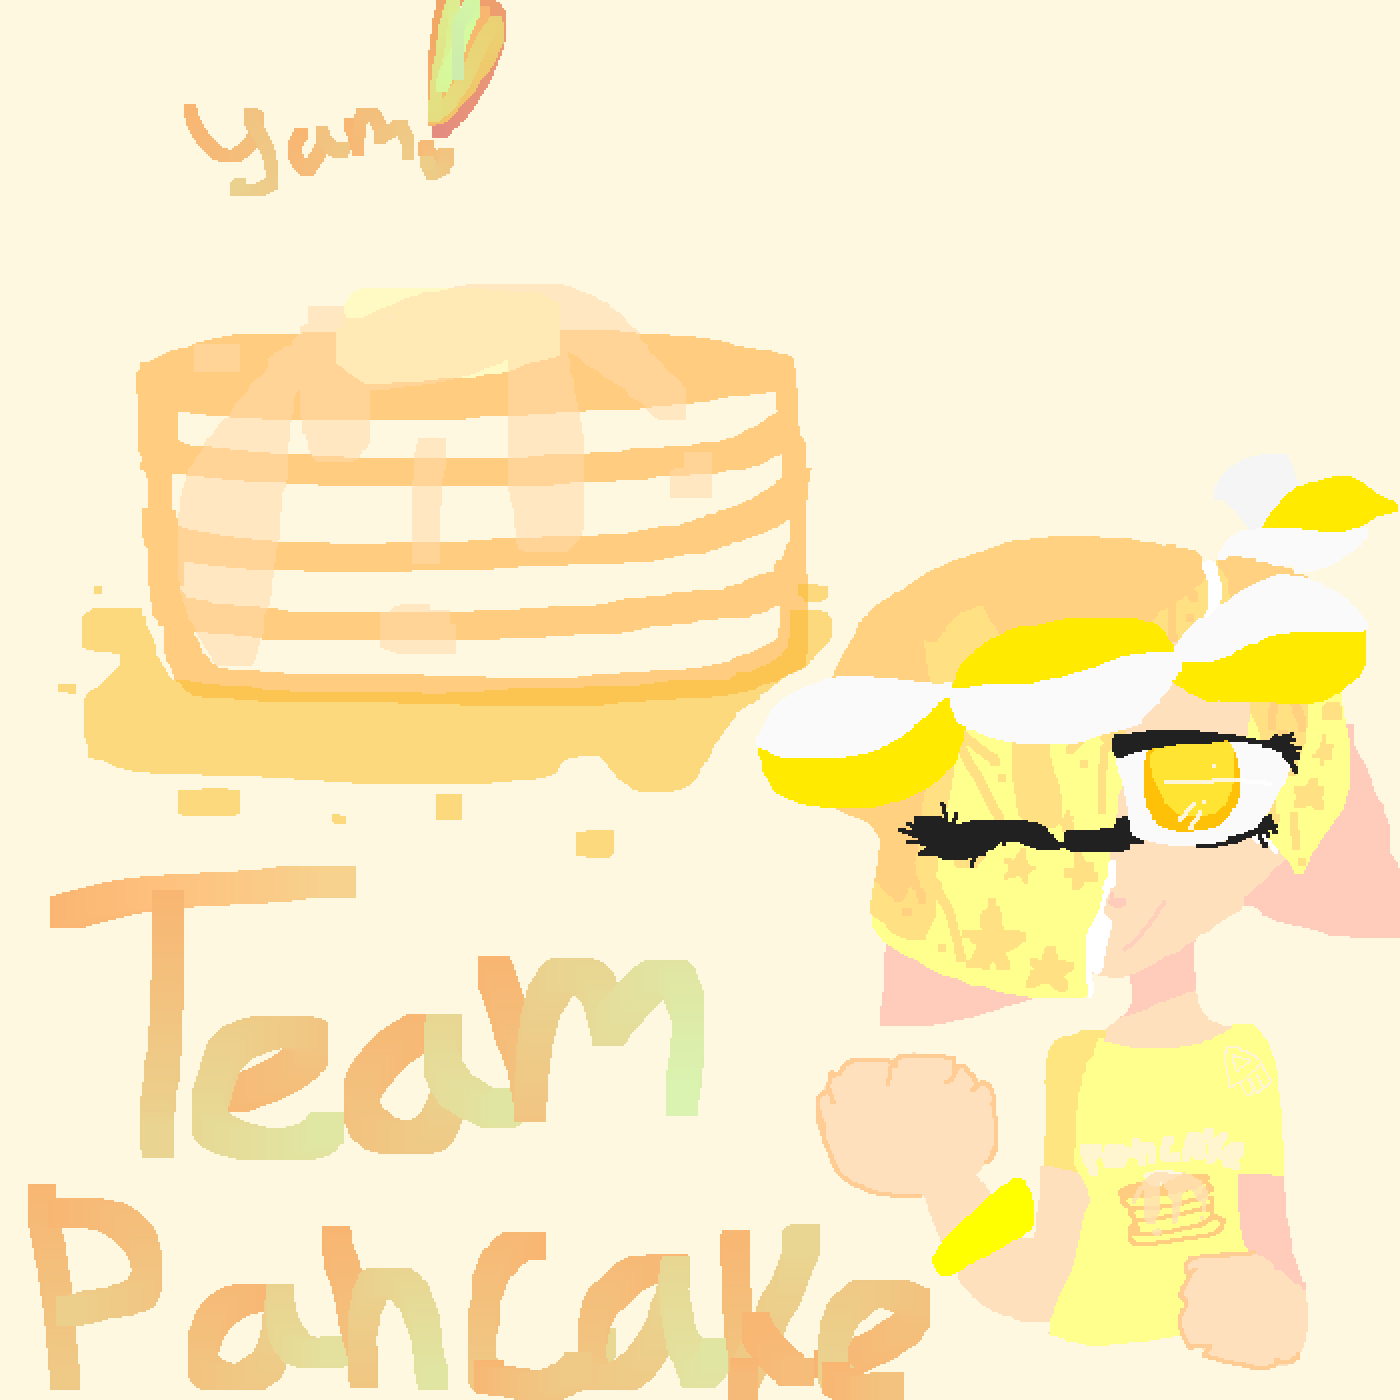 Lets Go Team Pancake! by onehellofakid